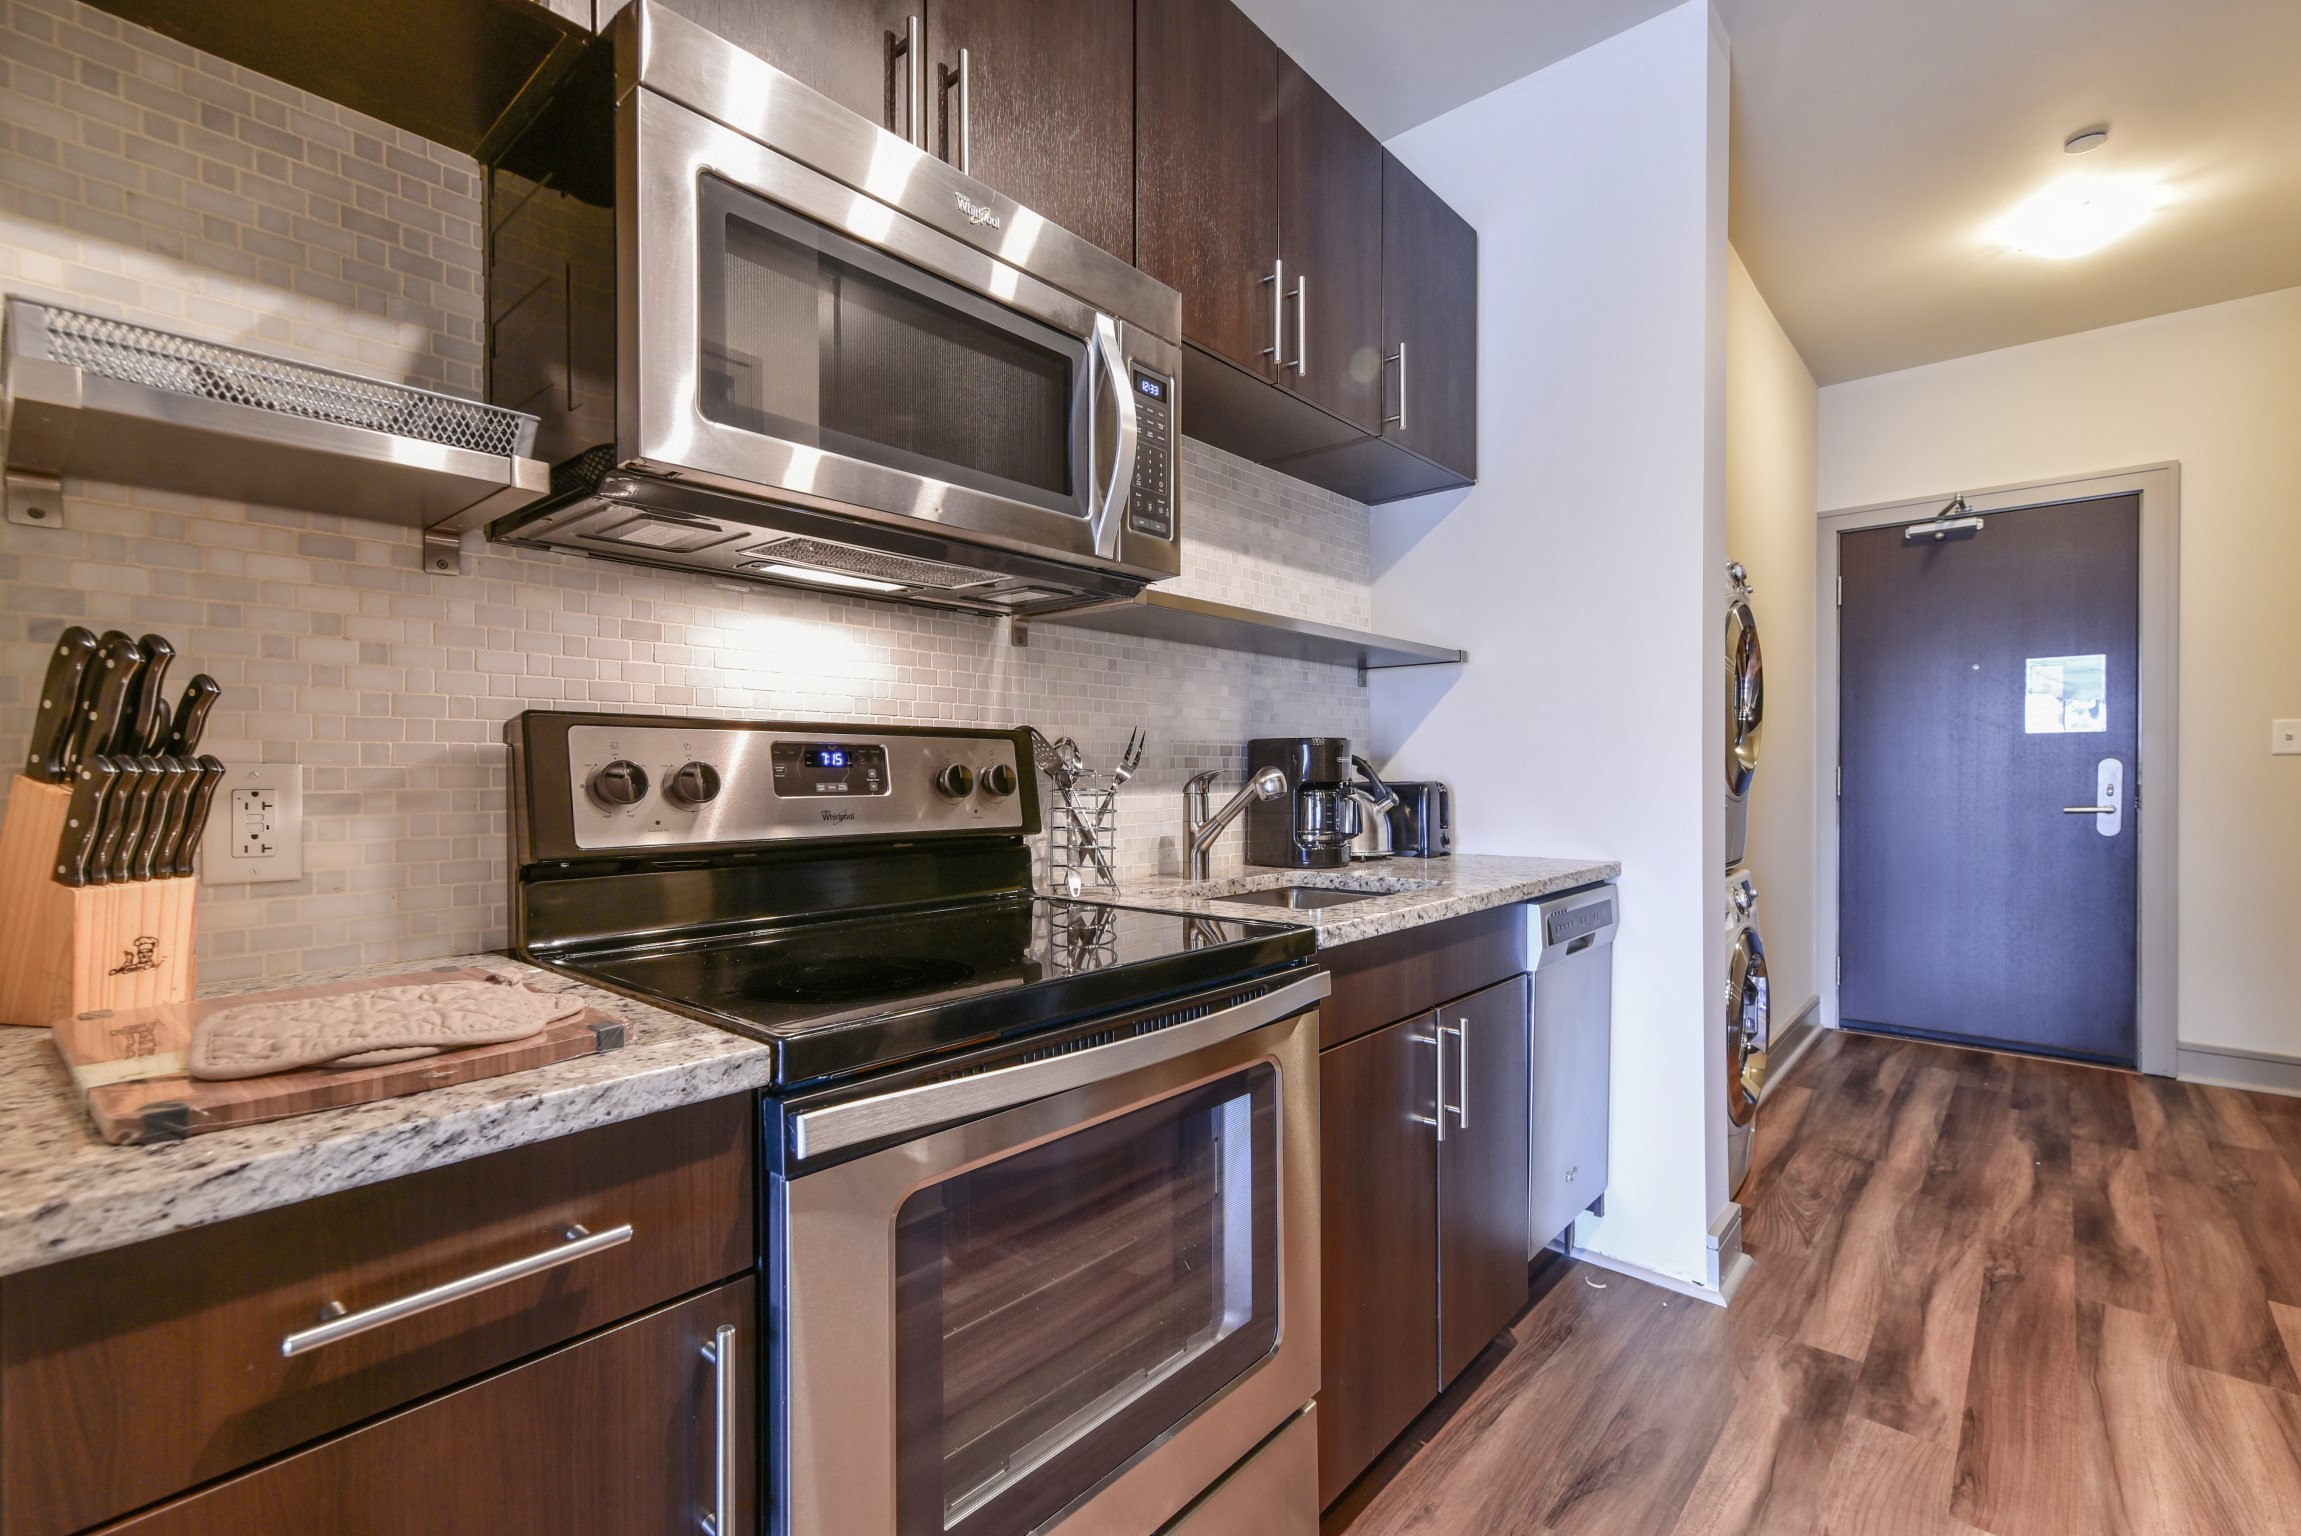 image 3 furnished 2 bedroom Apartment for rent in Waterfront, Boston Area